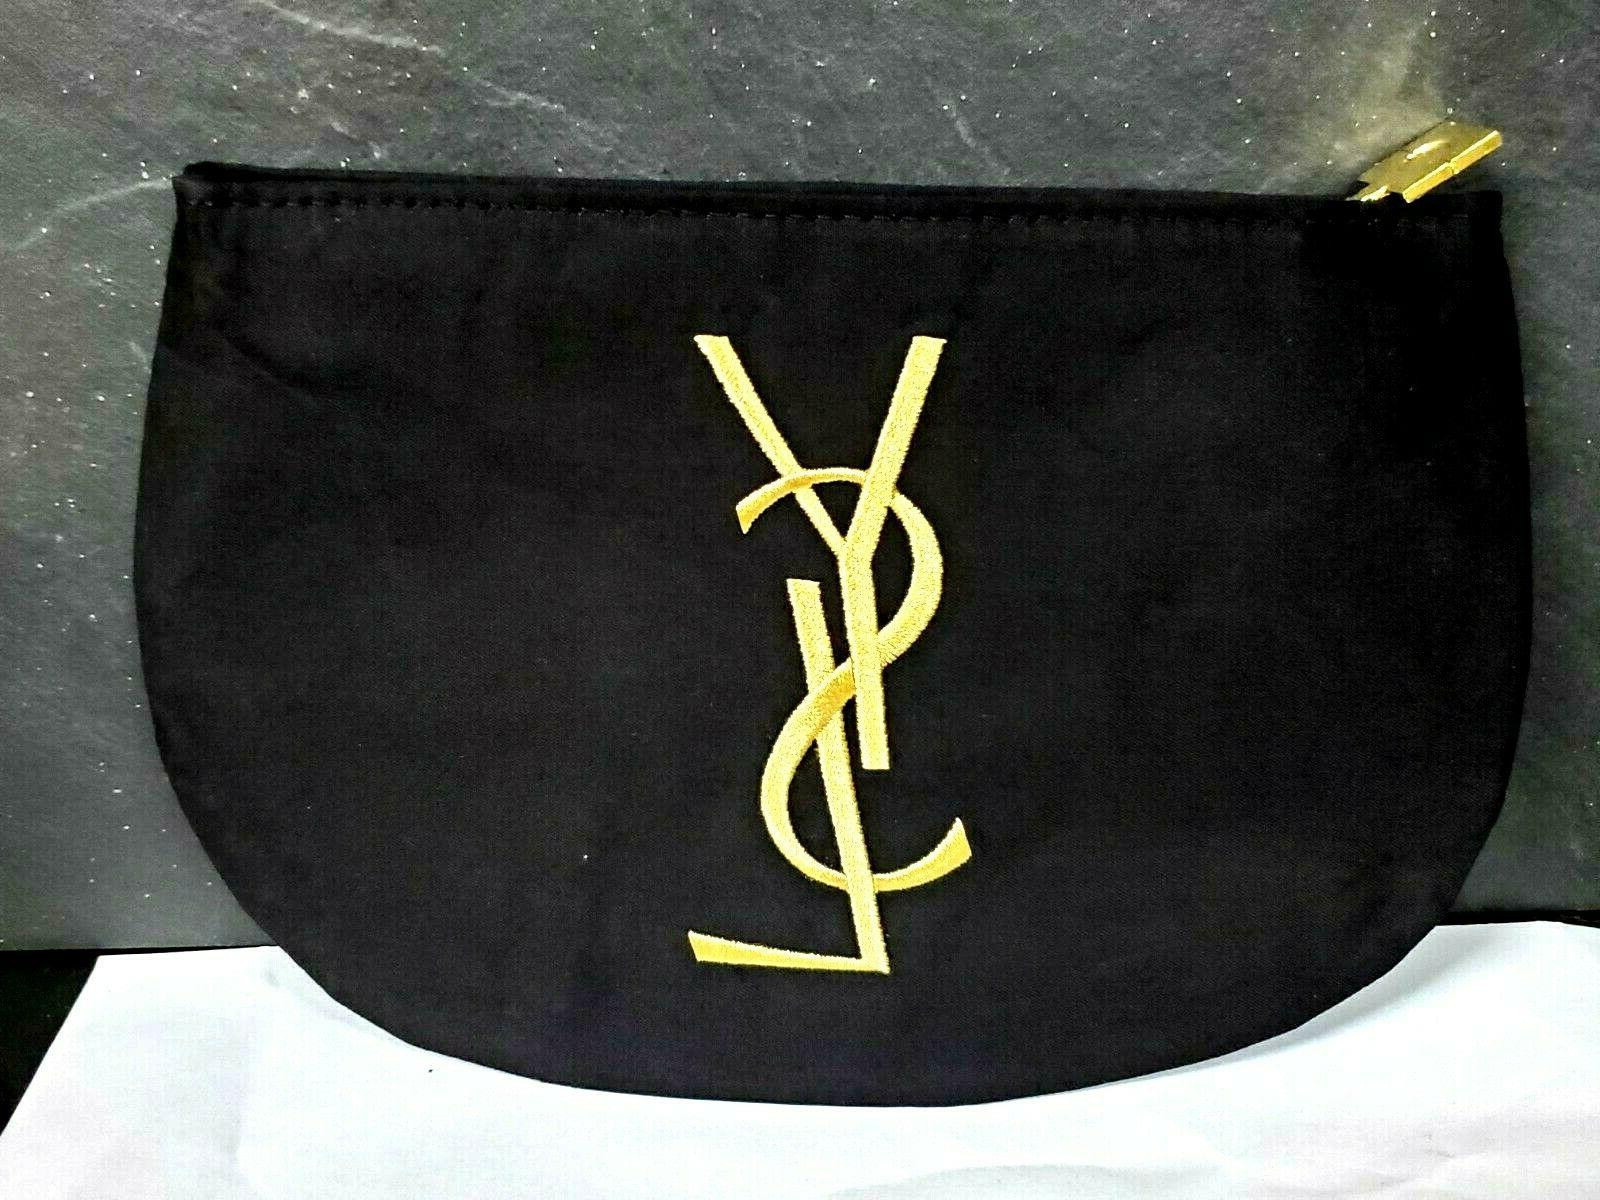 ysl small pouch cosmetics makeup bag black